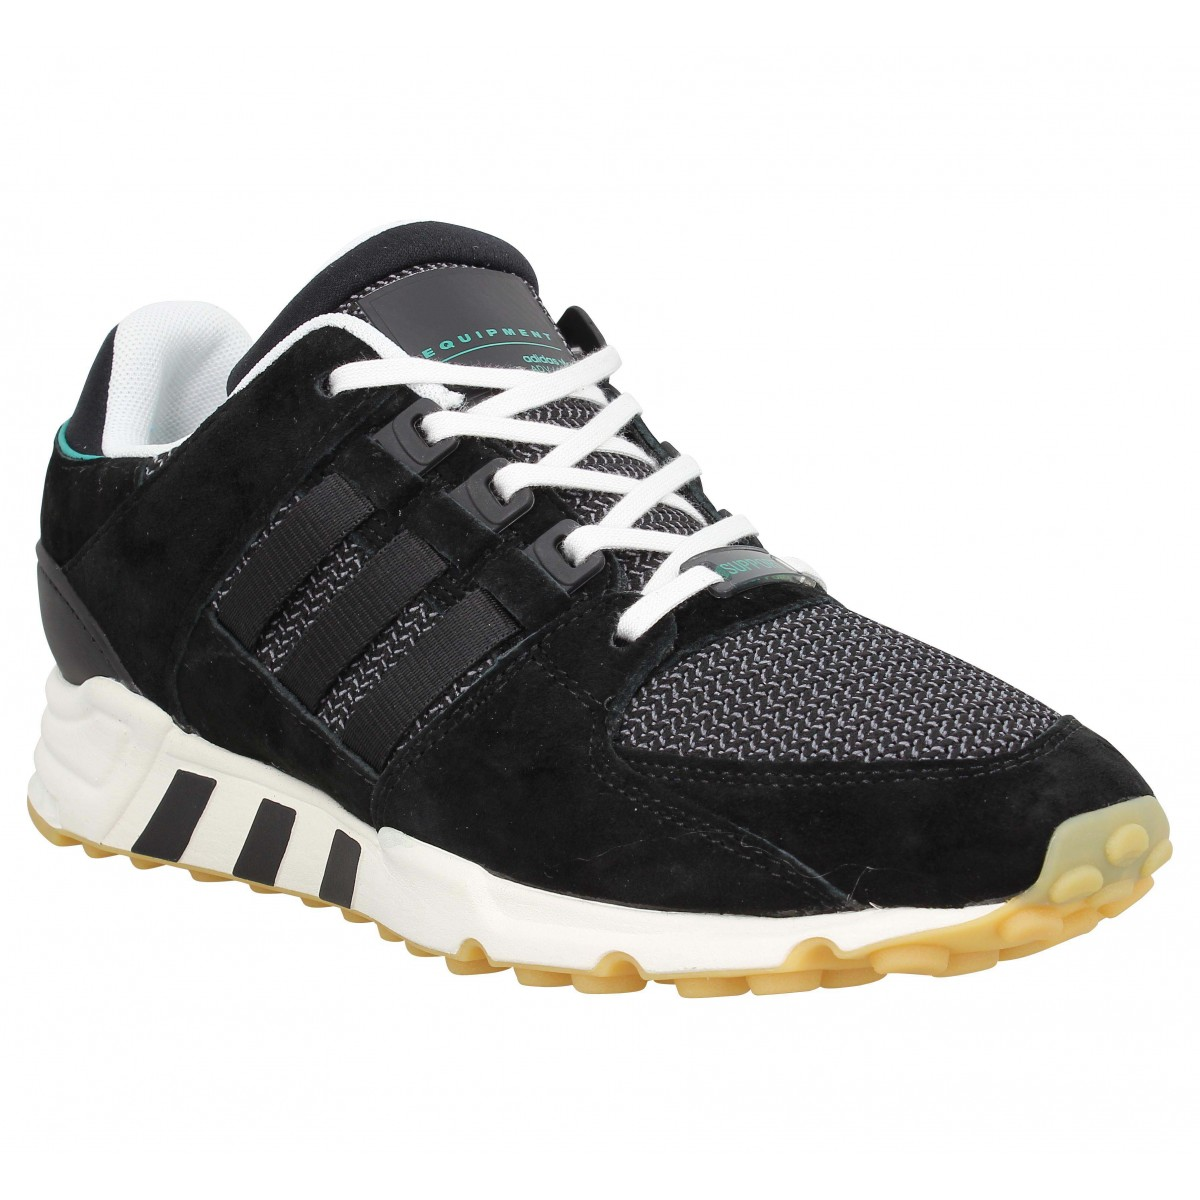 Homme Chaussures Support Eqt Rf Toile Adidas NoirFanny wOPXiuTkZl